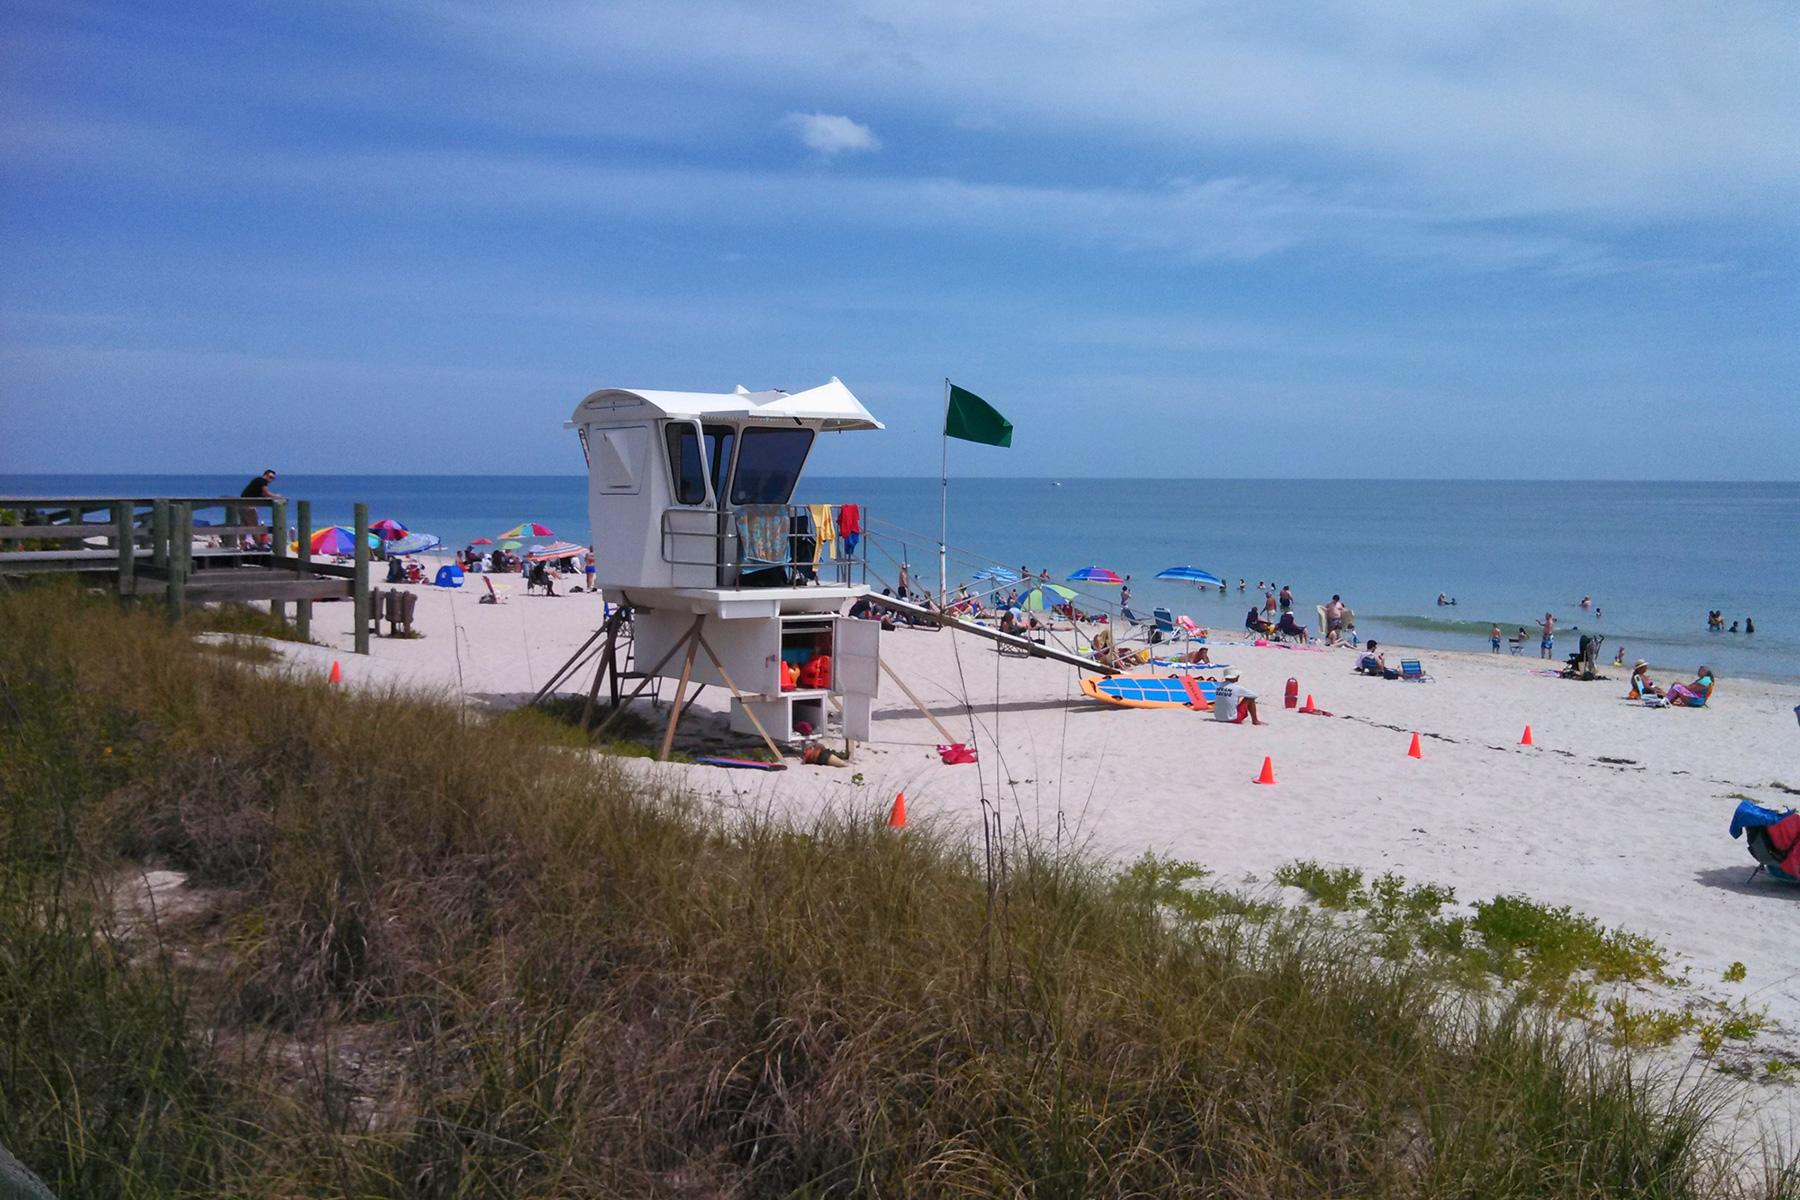 North Florida Beaches Map.11 Under The Radar Florida Beach Towns To Visit This Winter